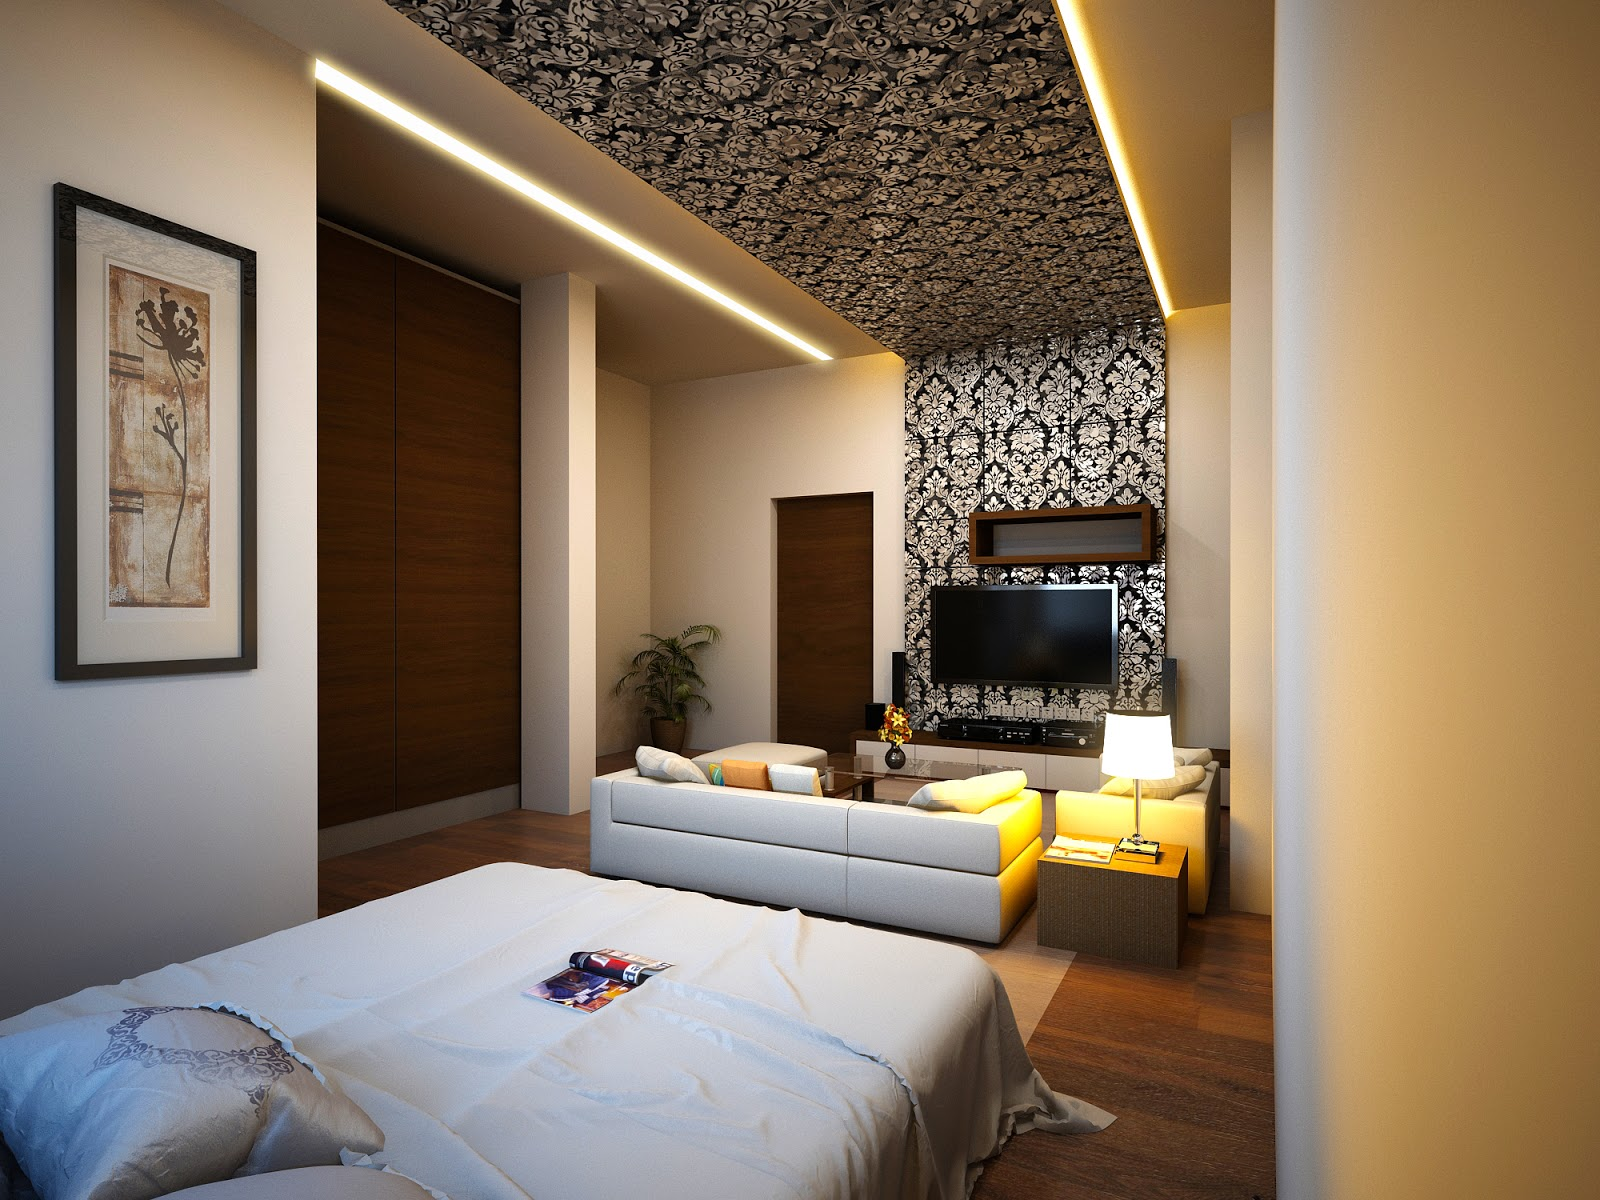 Ary studios 3d architectural rendering walkthroughs for 3d interior design websites